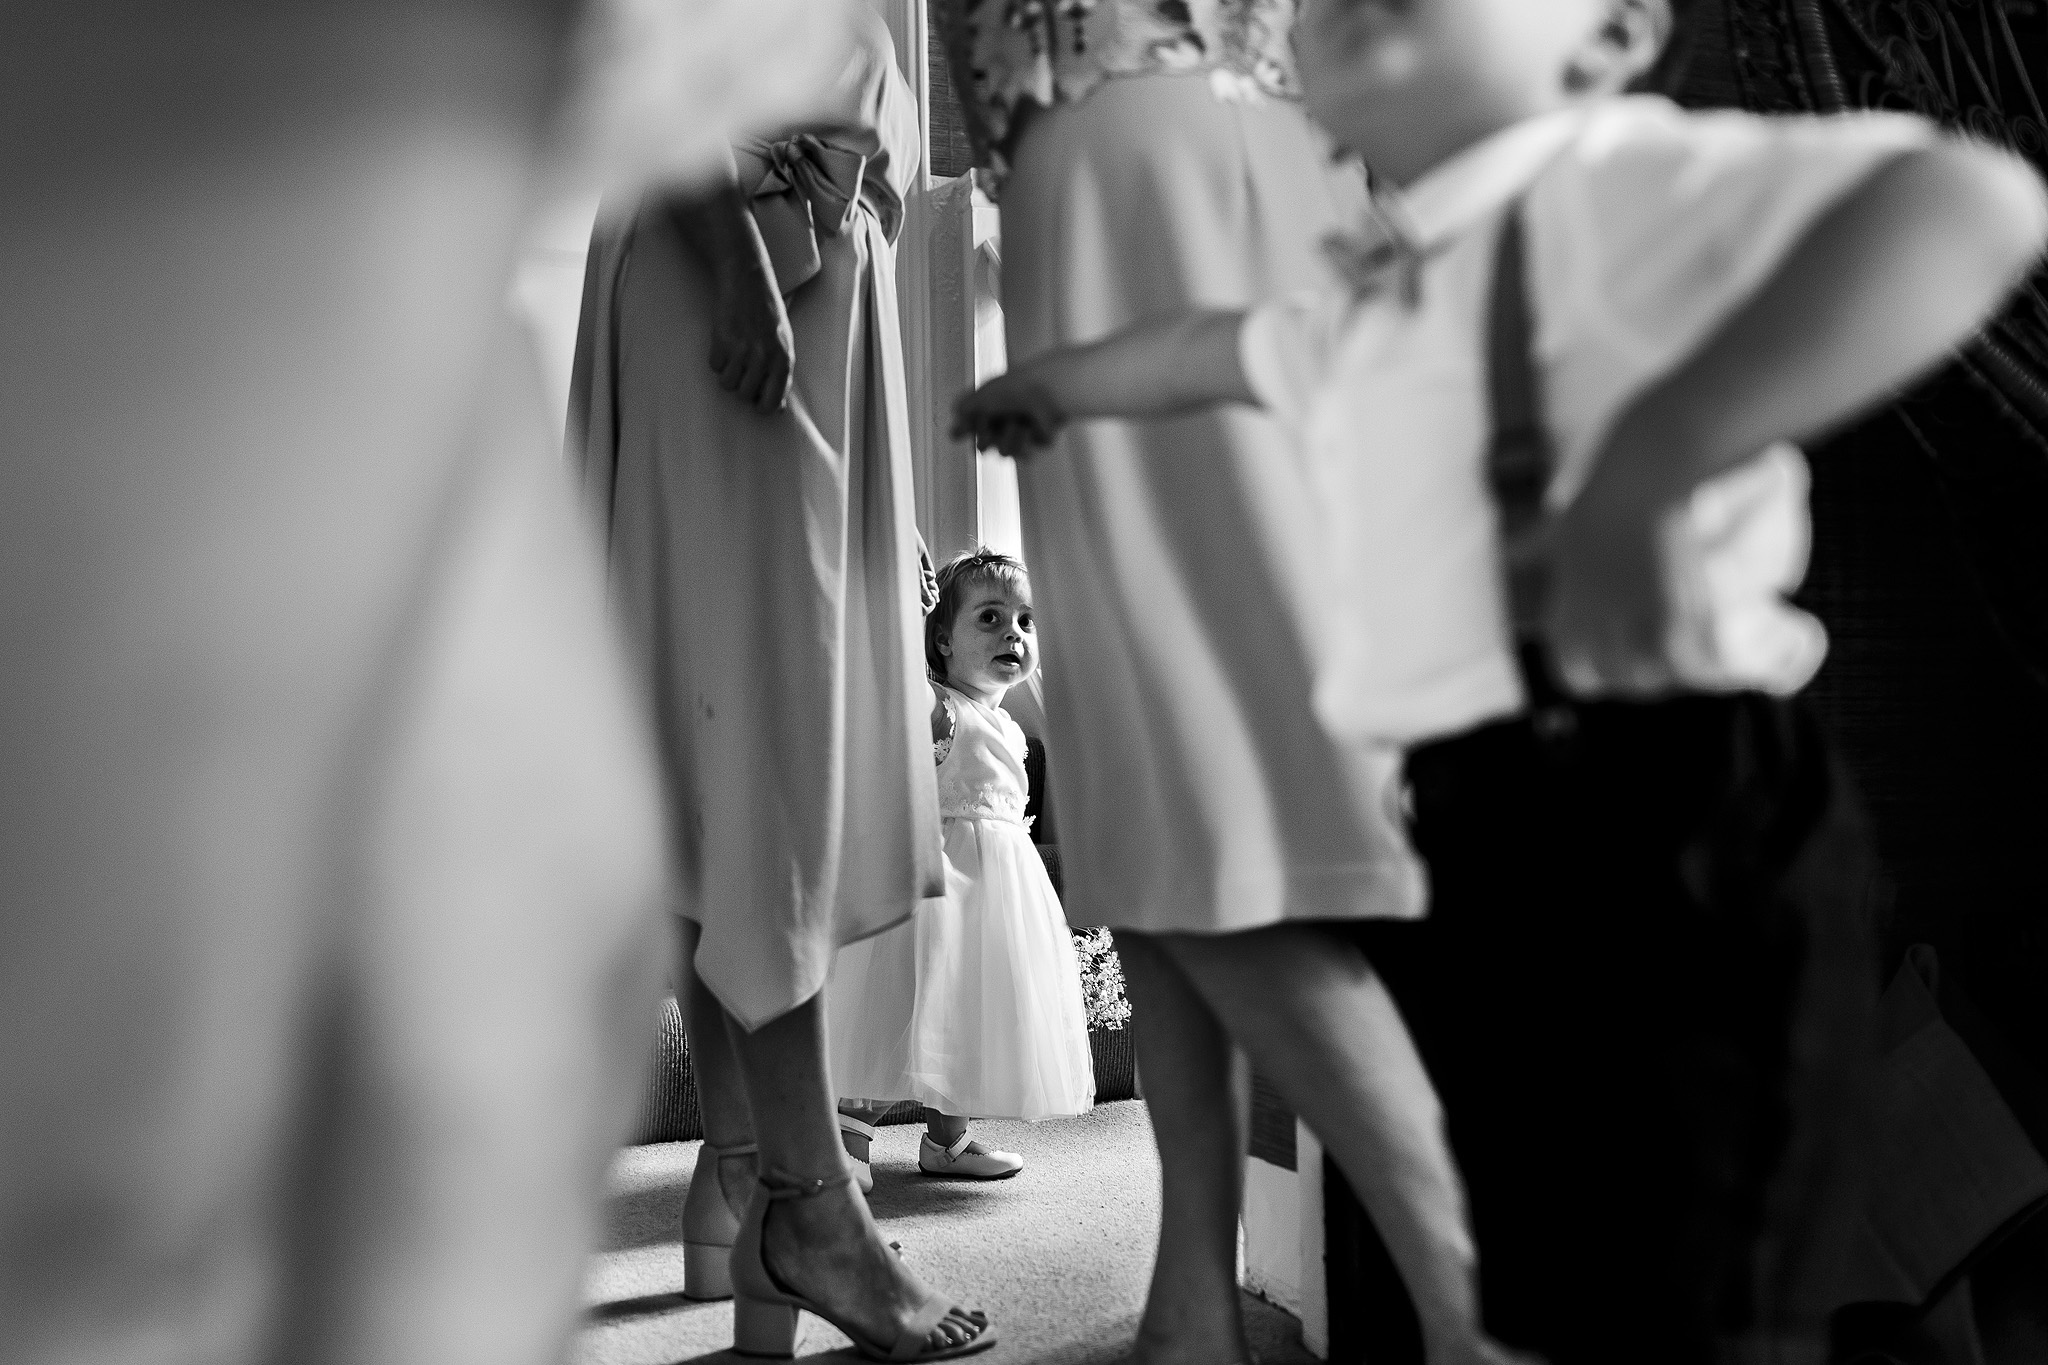 Flower girl only visible in between all the legs of bridesmaids